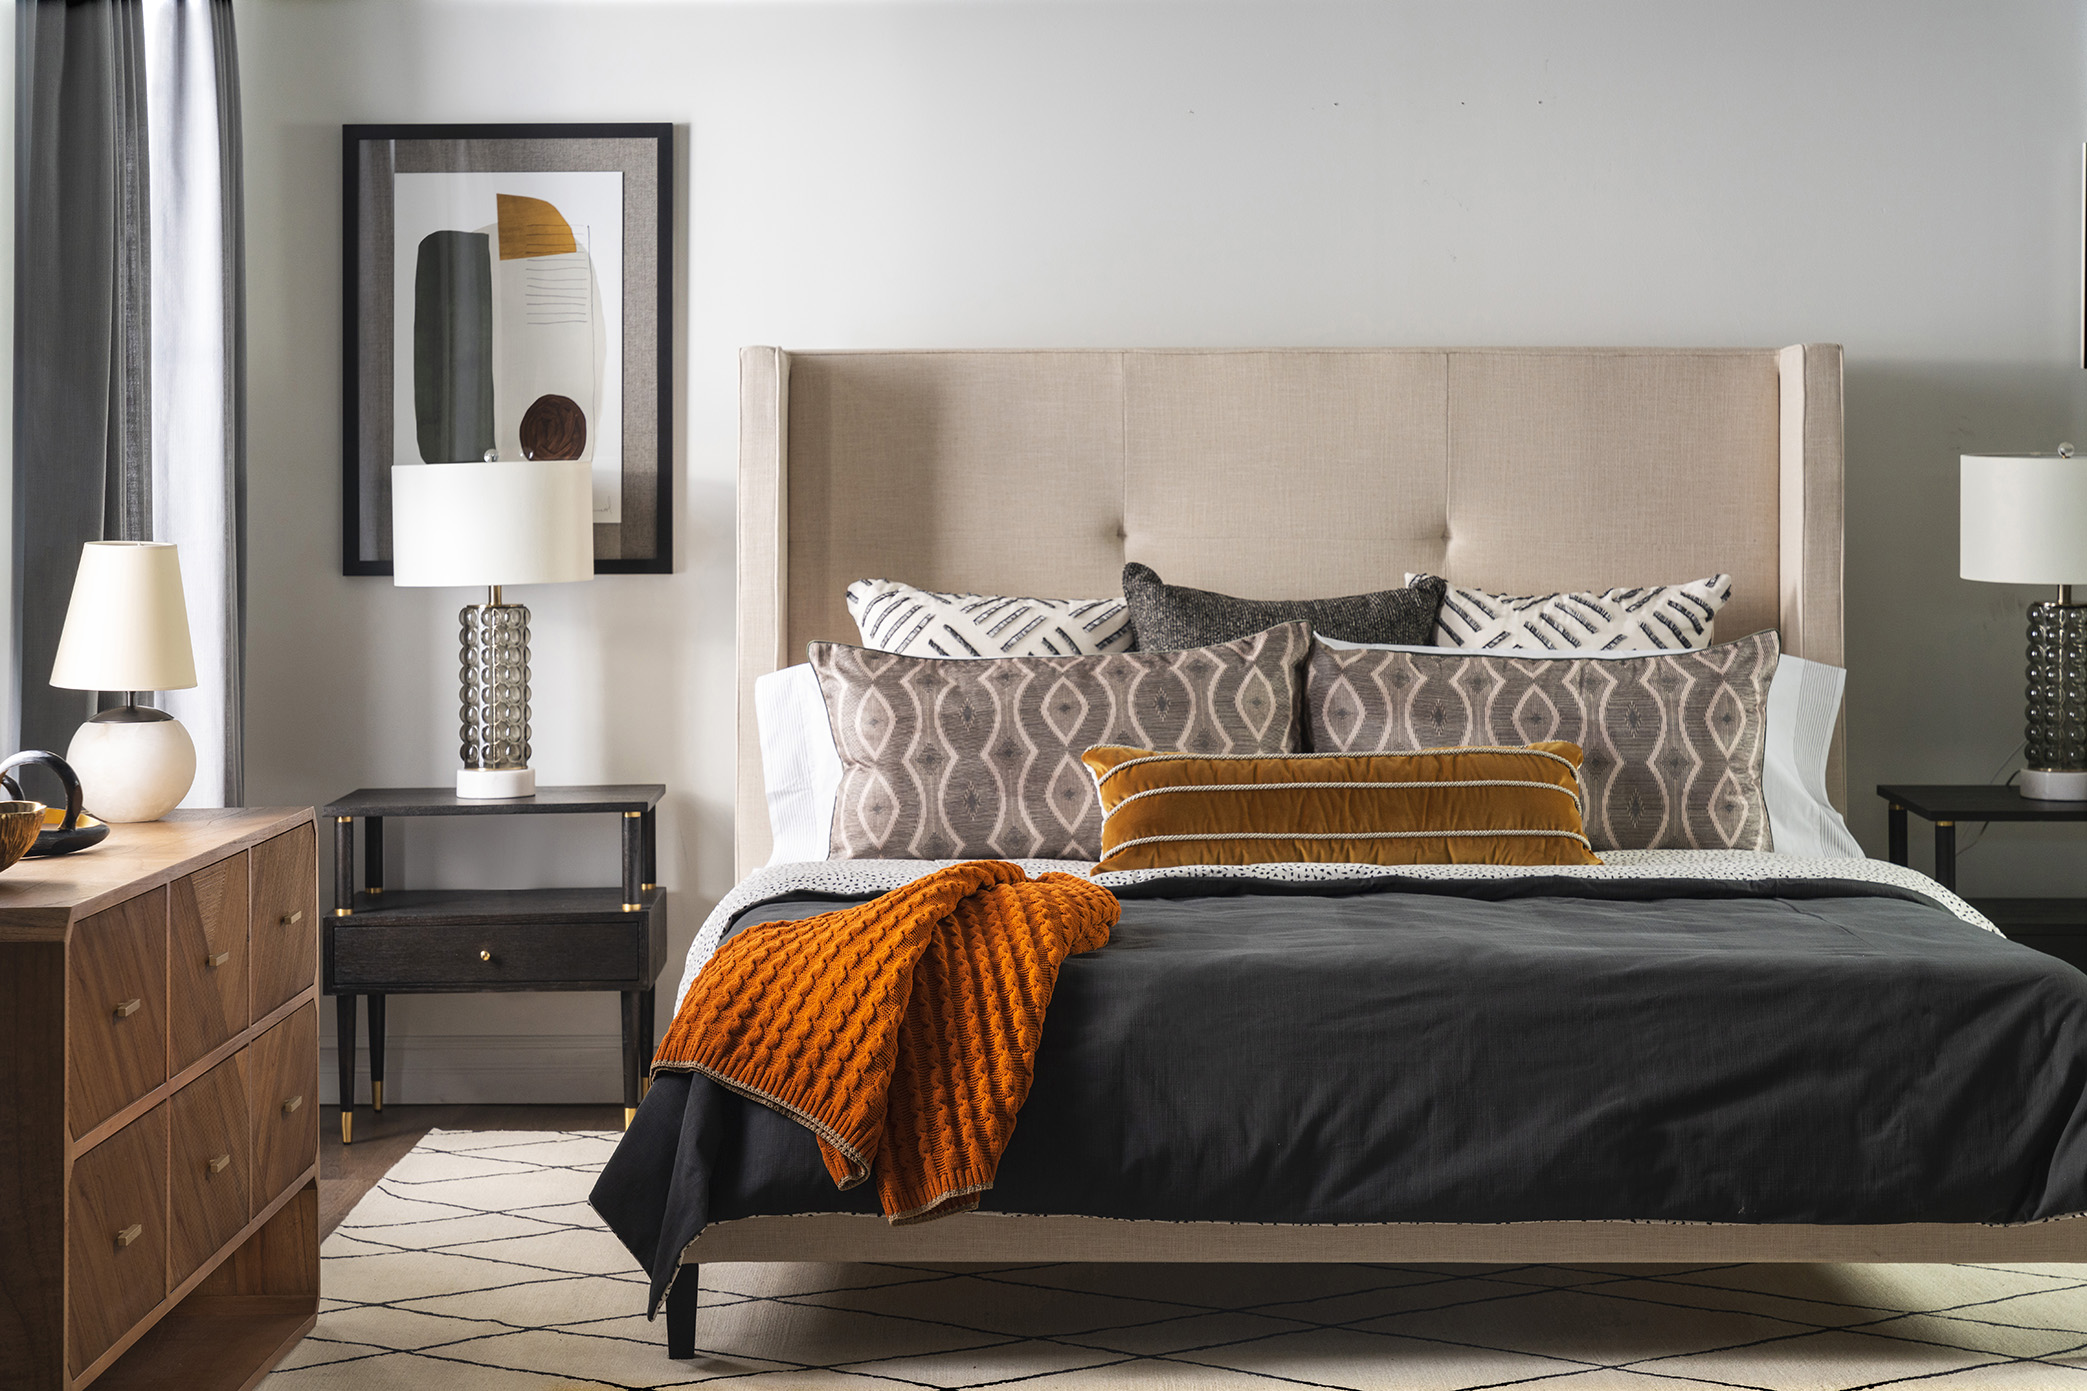 Image of bed-king